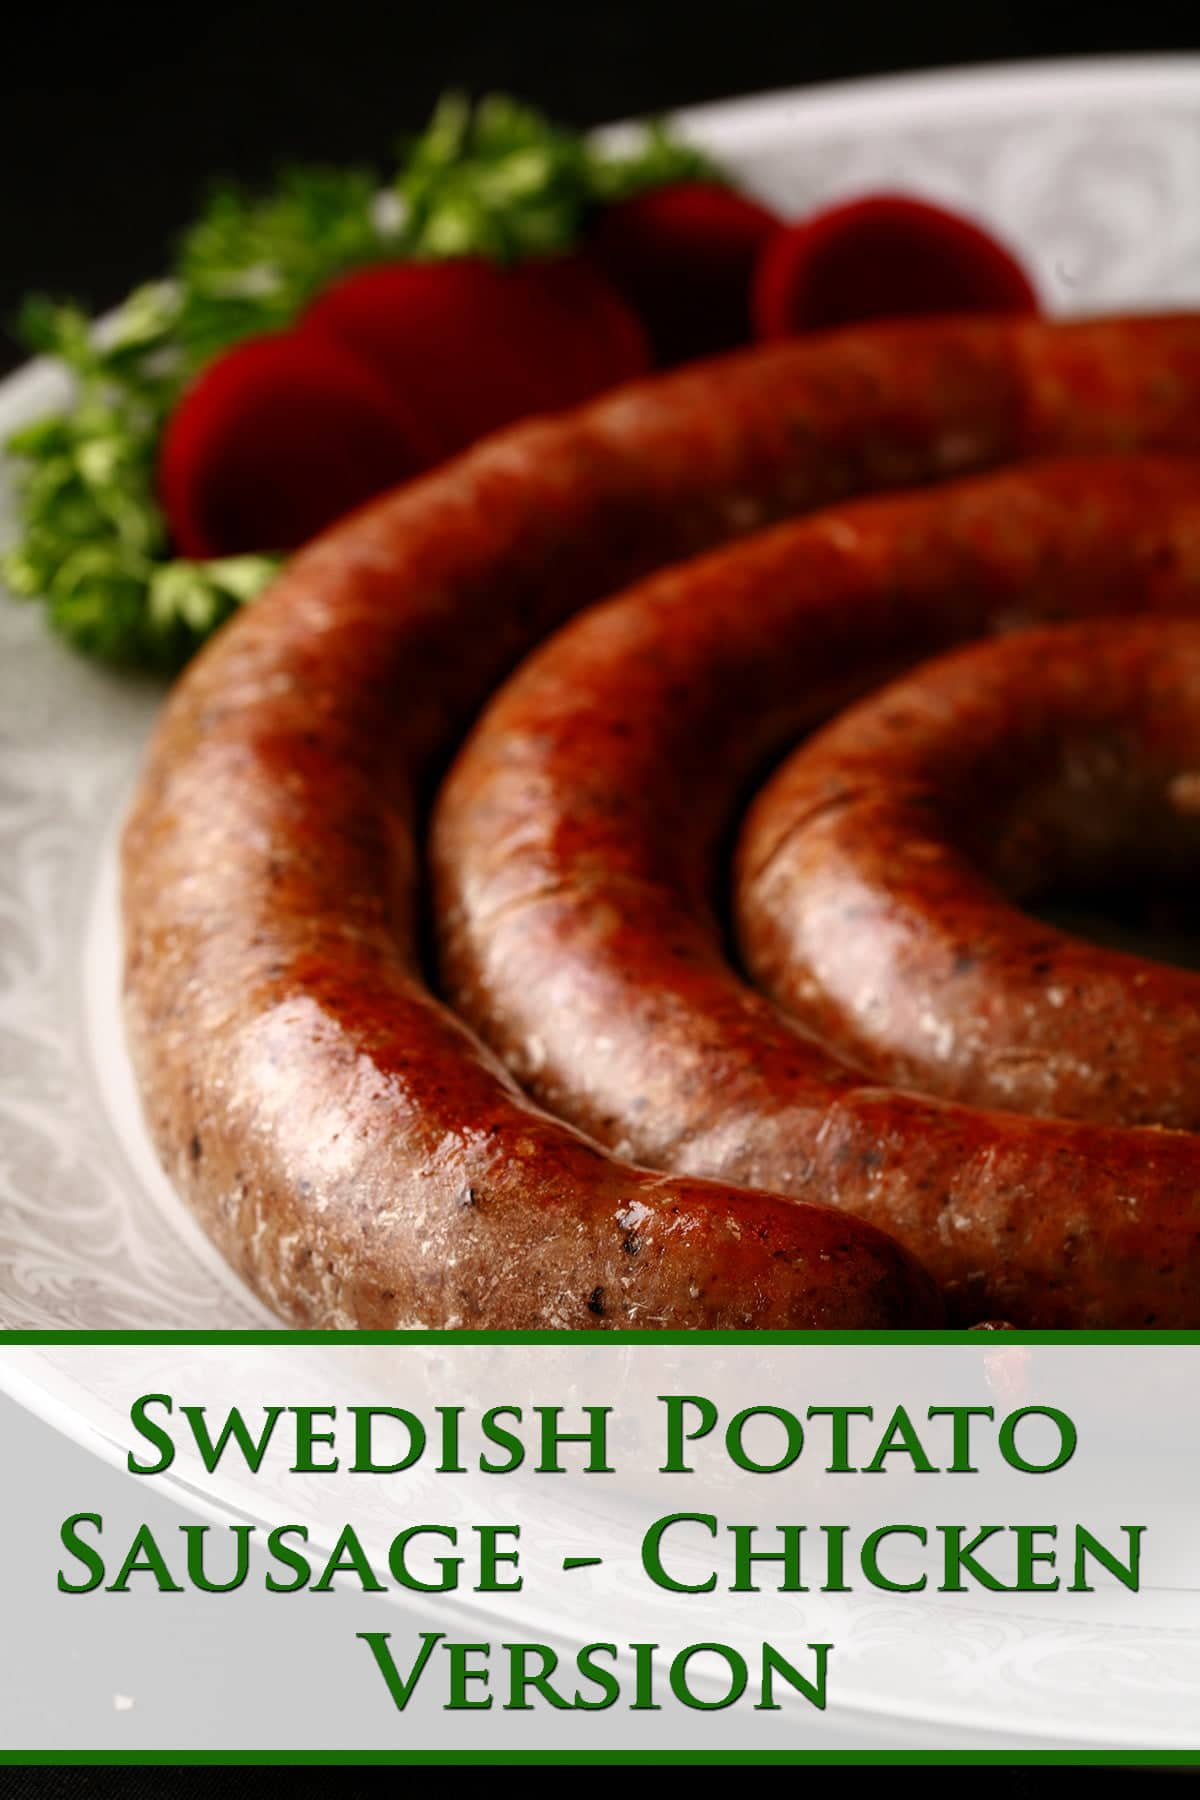 A large coil of sausage on a white plate. It's garnished with slices of beet pickles and some parsley.